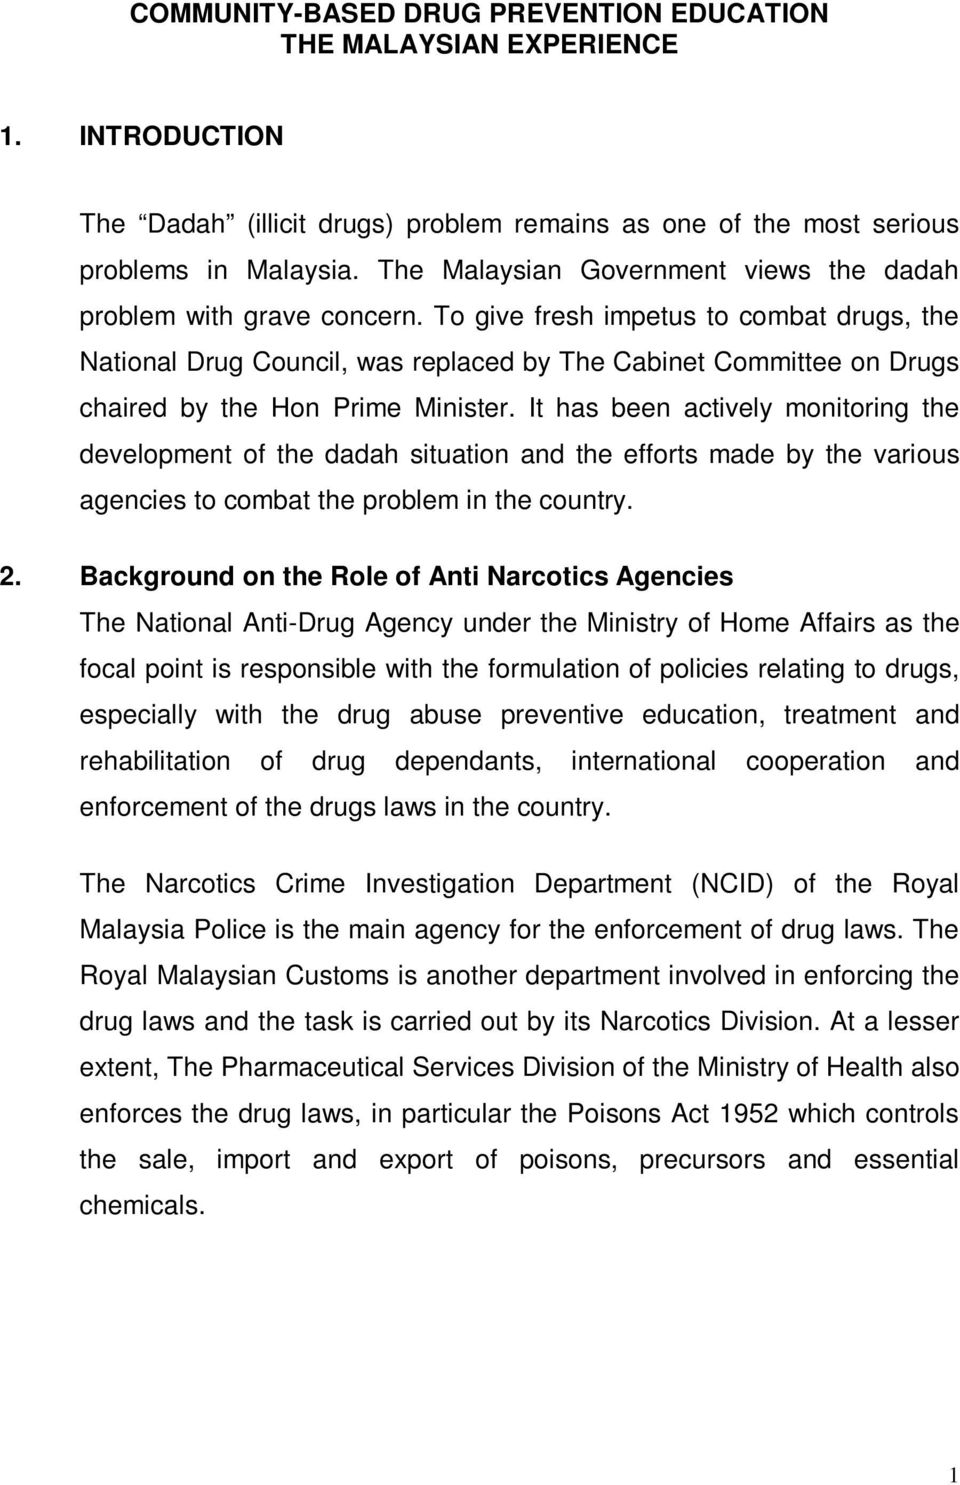 To give fresh impetus to combat drugs, the National Drug Council, was replaced by The Cabinet Committee on Drugs chaired by the Hon Prime Minister.